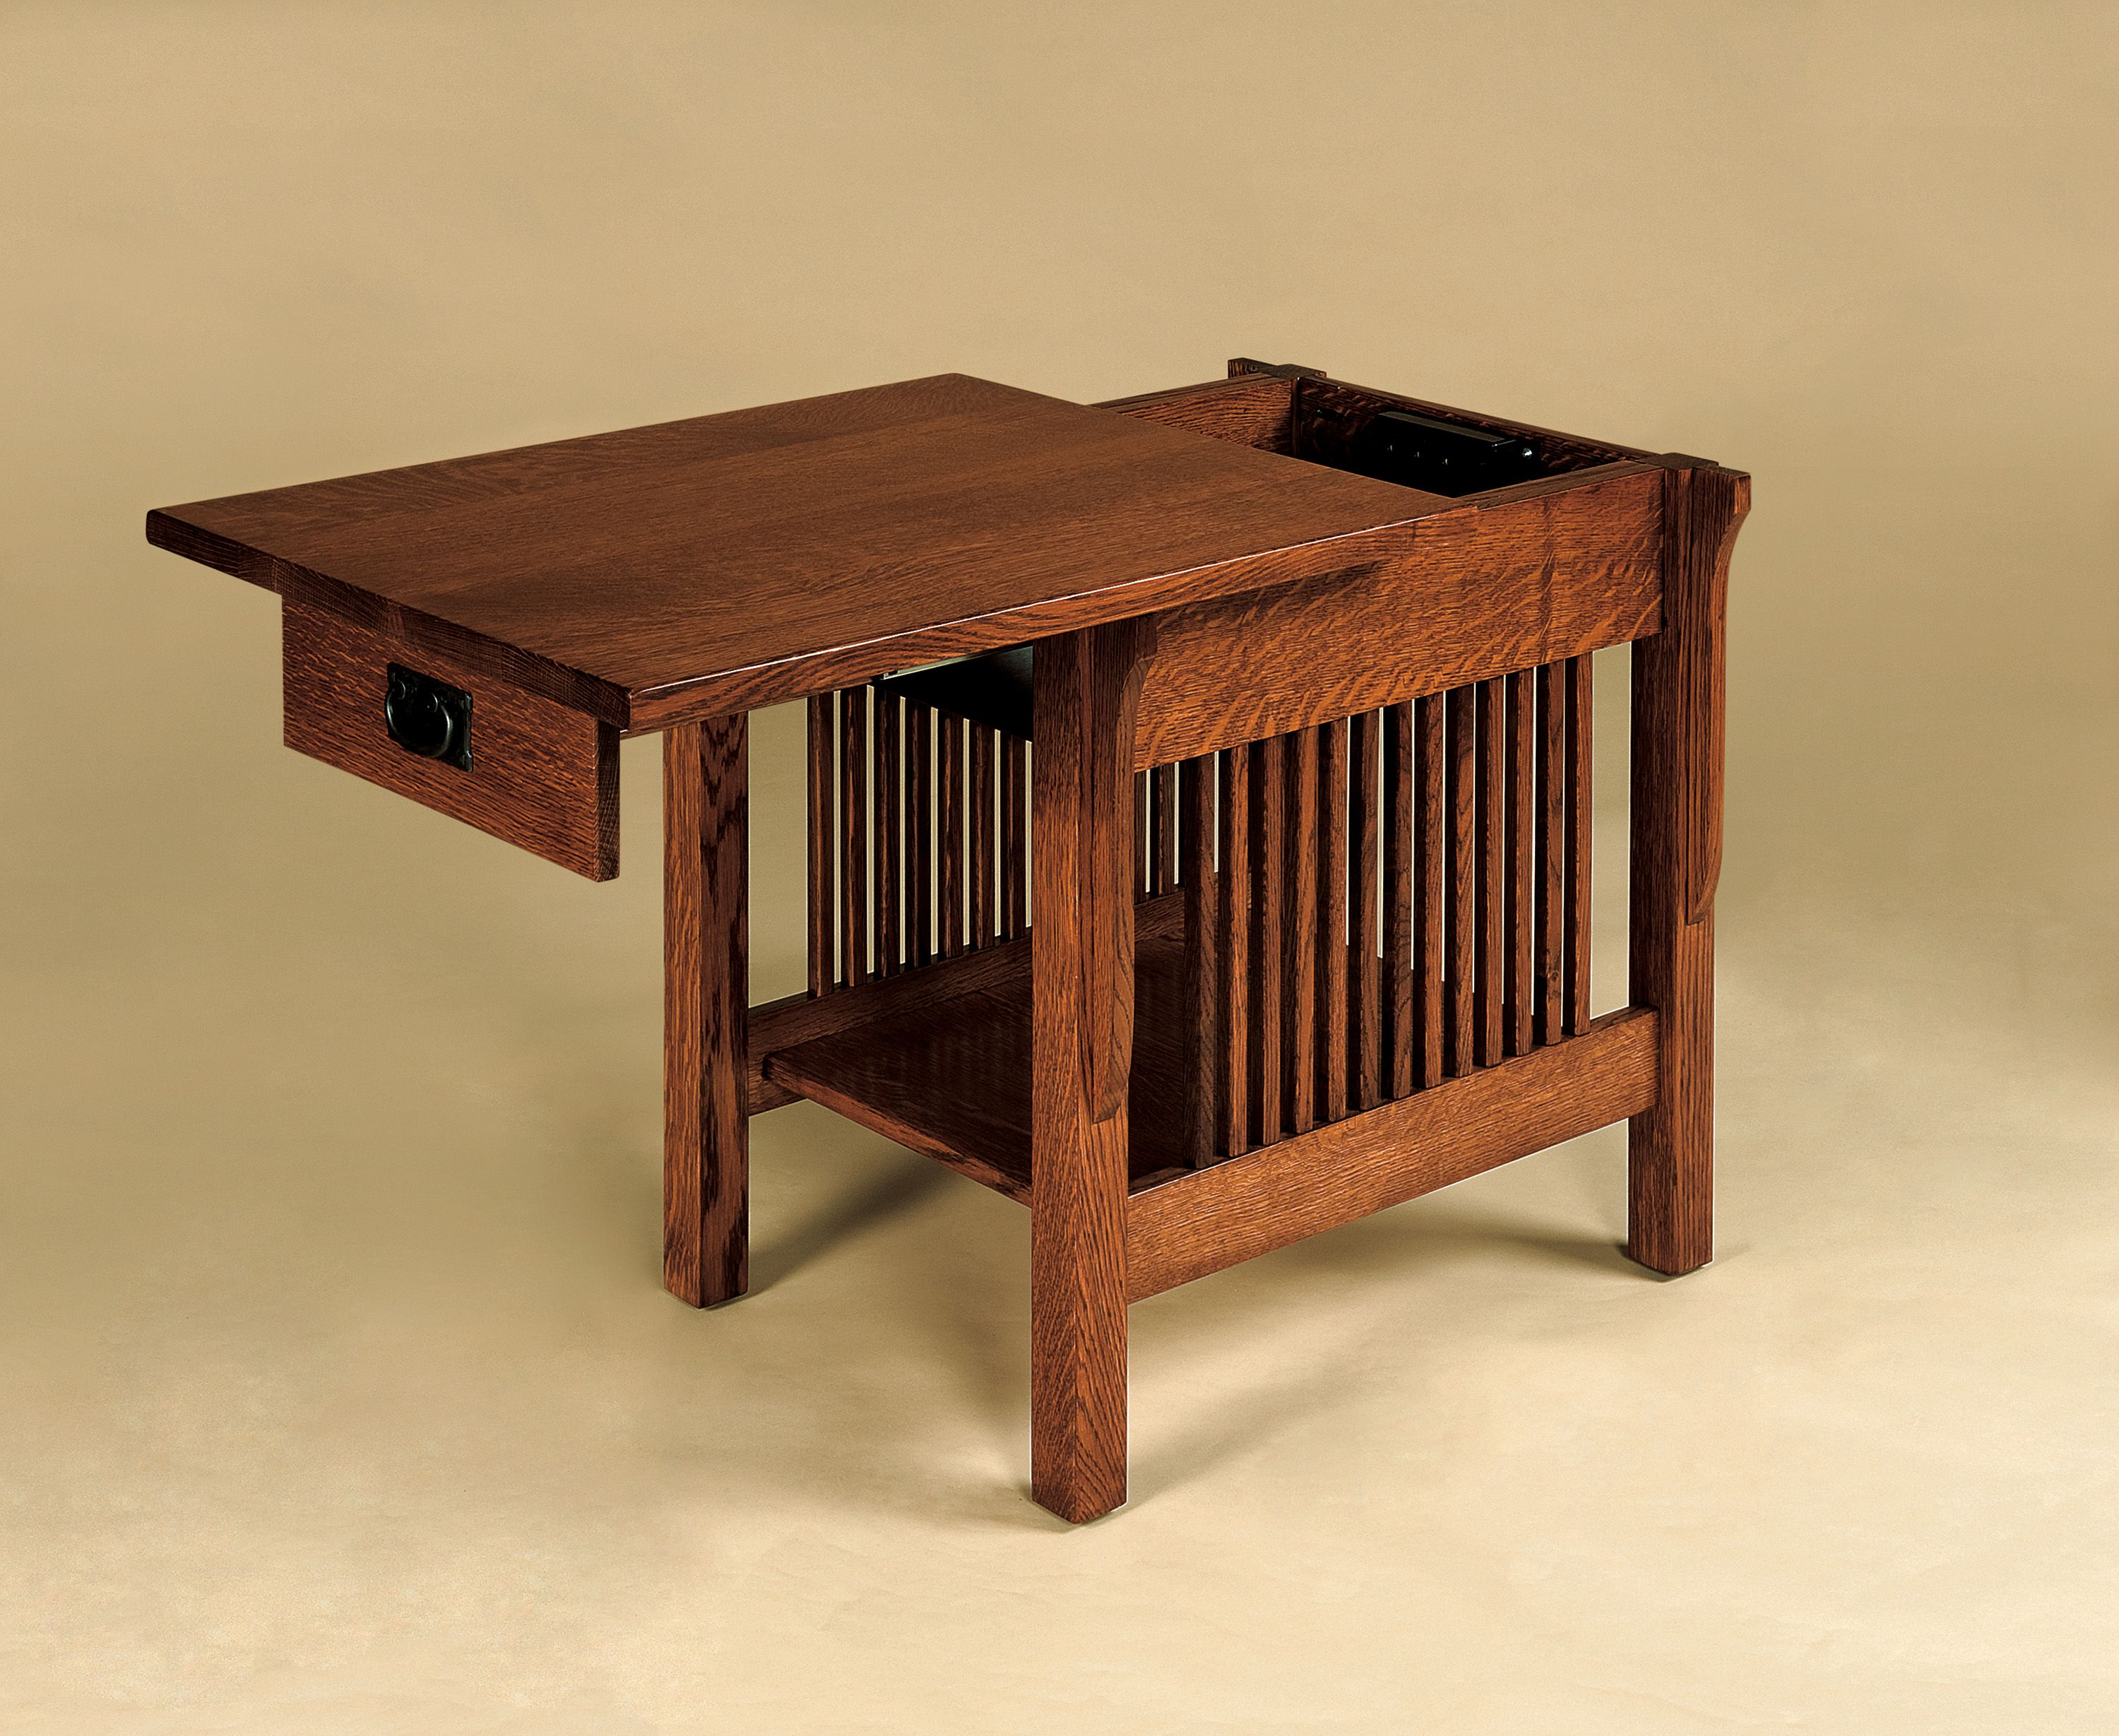 Coffee And End Tables With Storage Mission Craftsman Style End Table With Sliding Top For Lap Top